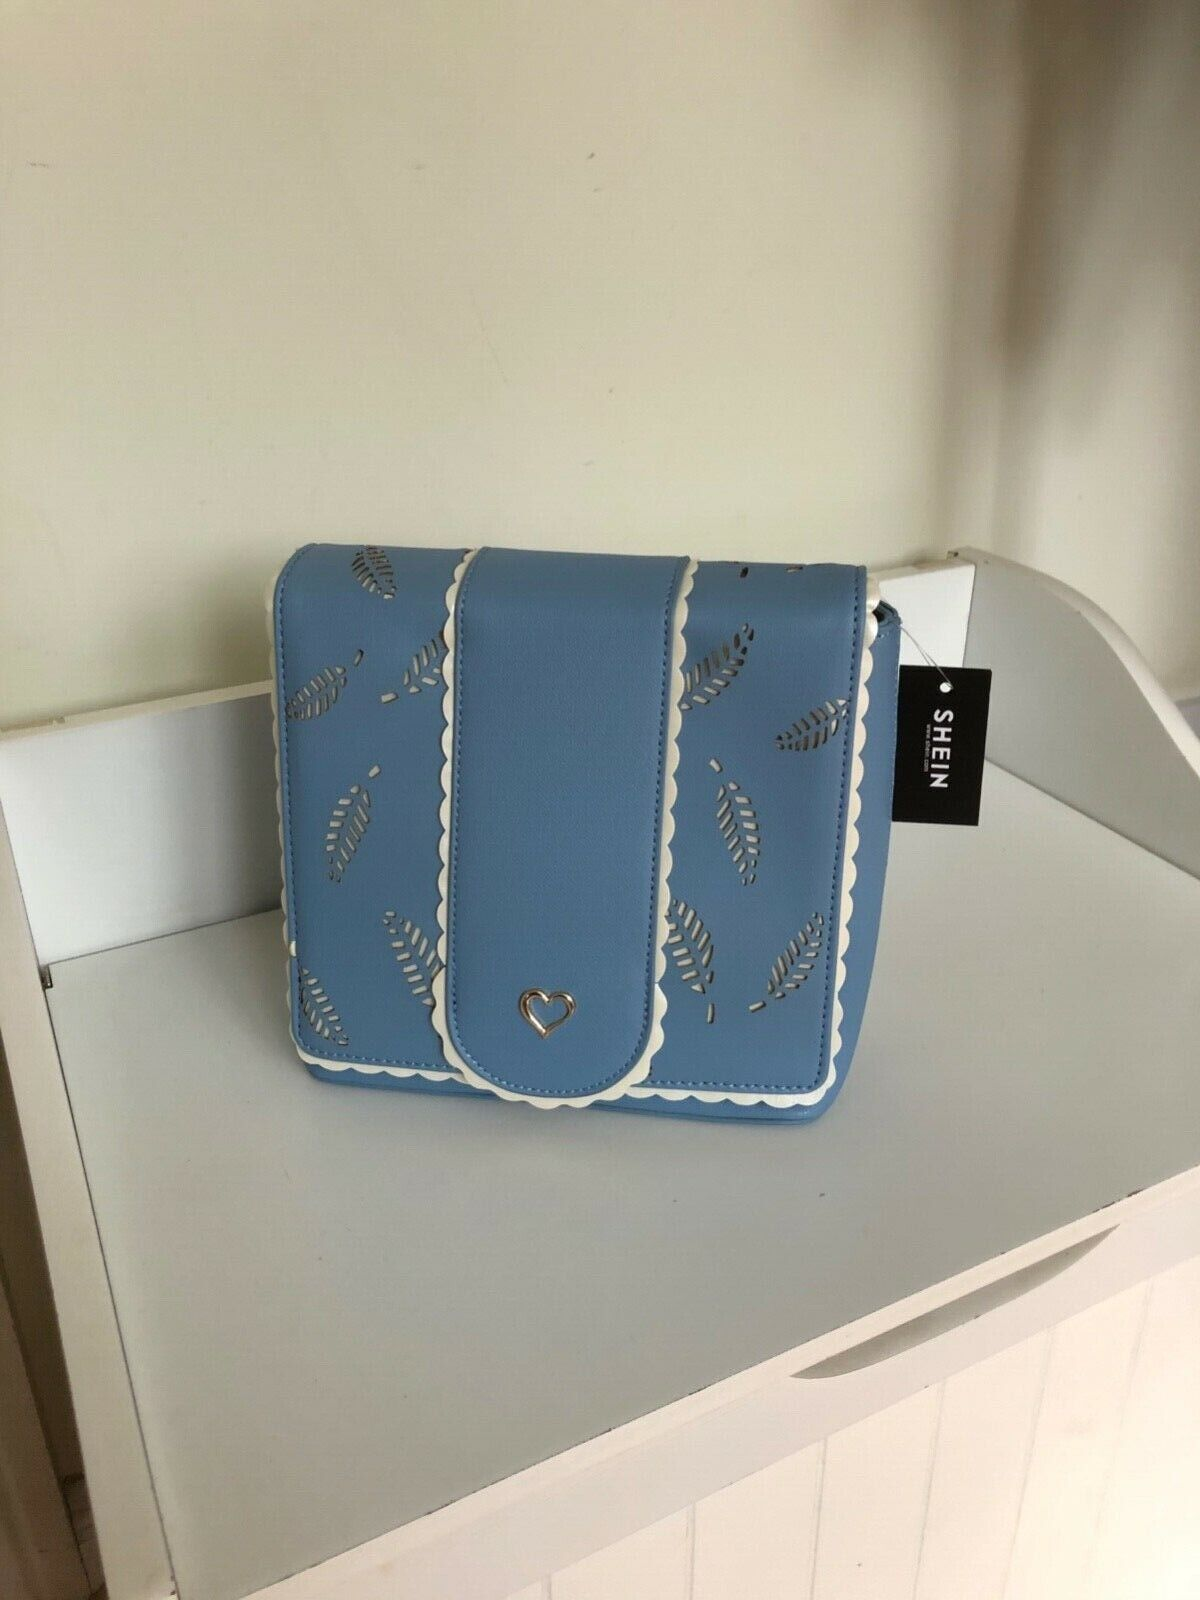 Brand New women's/ladies purse for sale